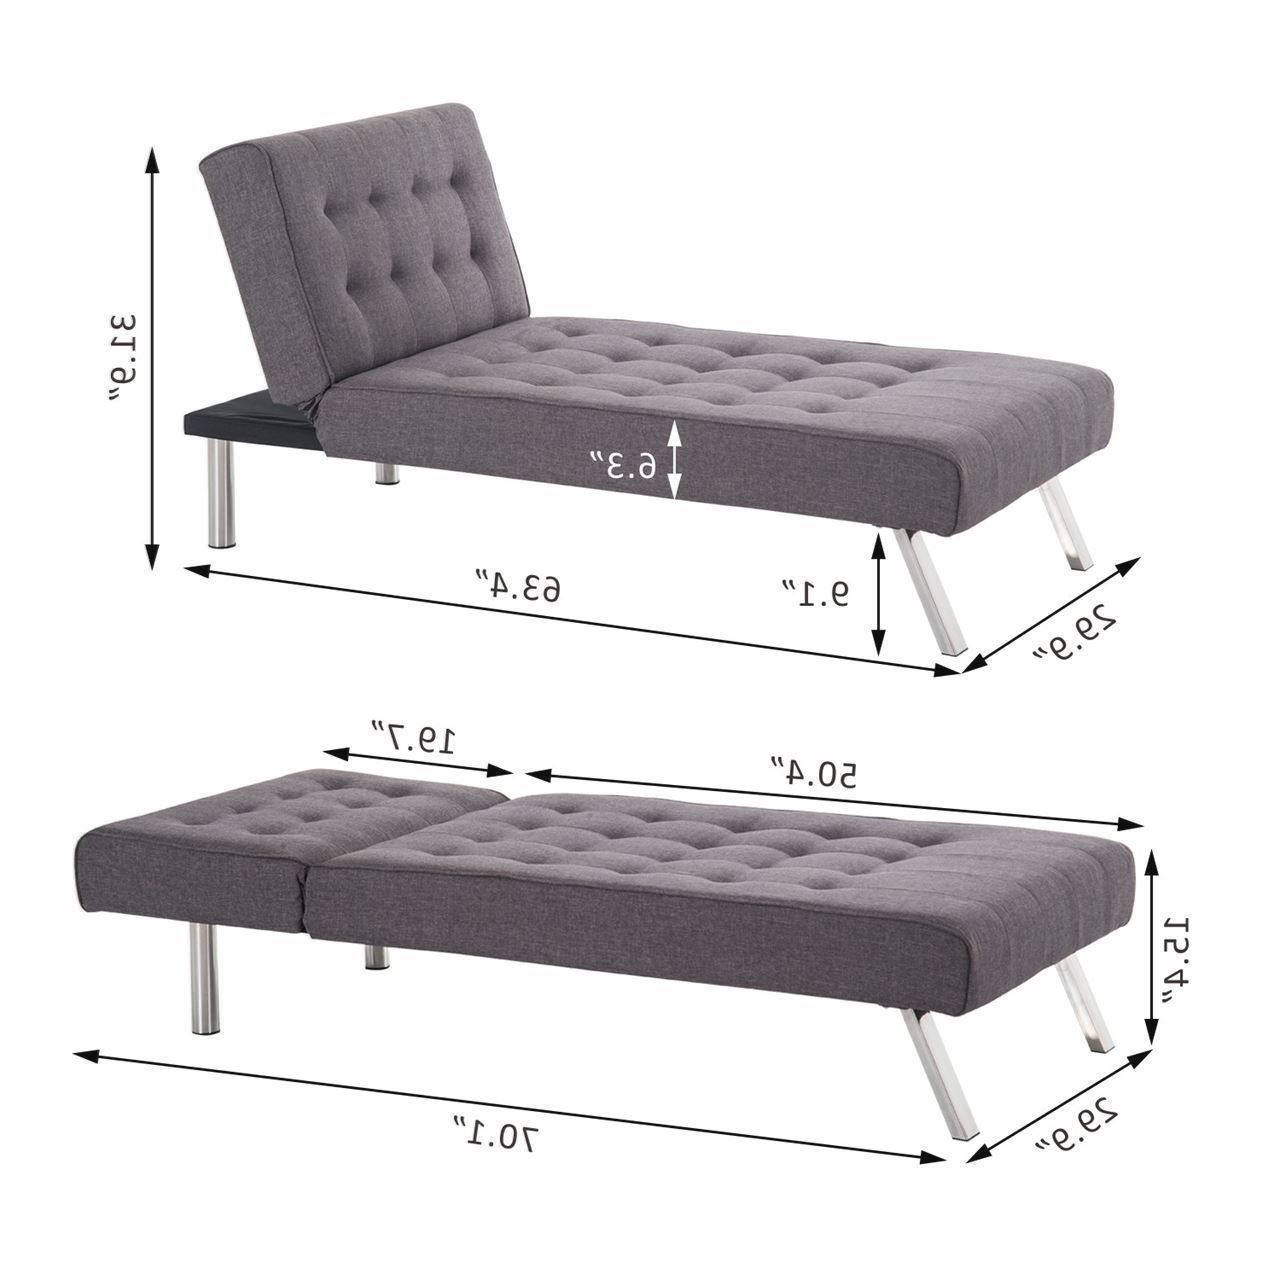 Famous Sleeper Sofath Chaise Lounge Codeminimalist Net Fascinating Image Pertaining To Sleeper Chaise Lounges (View 5 of 15)